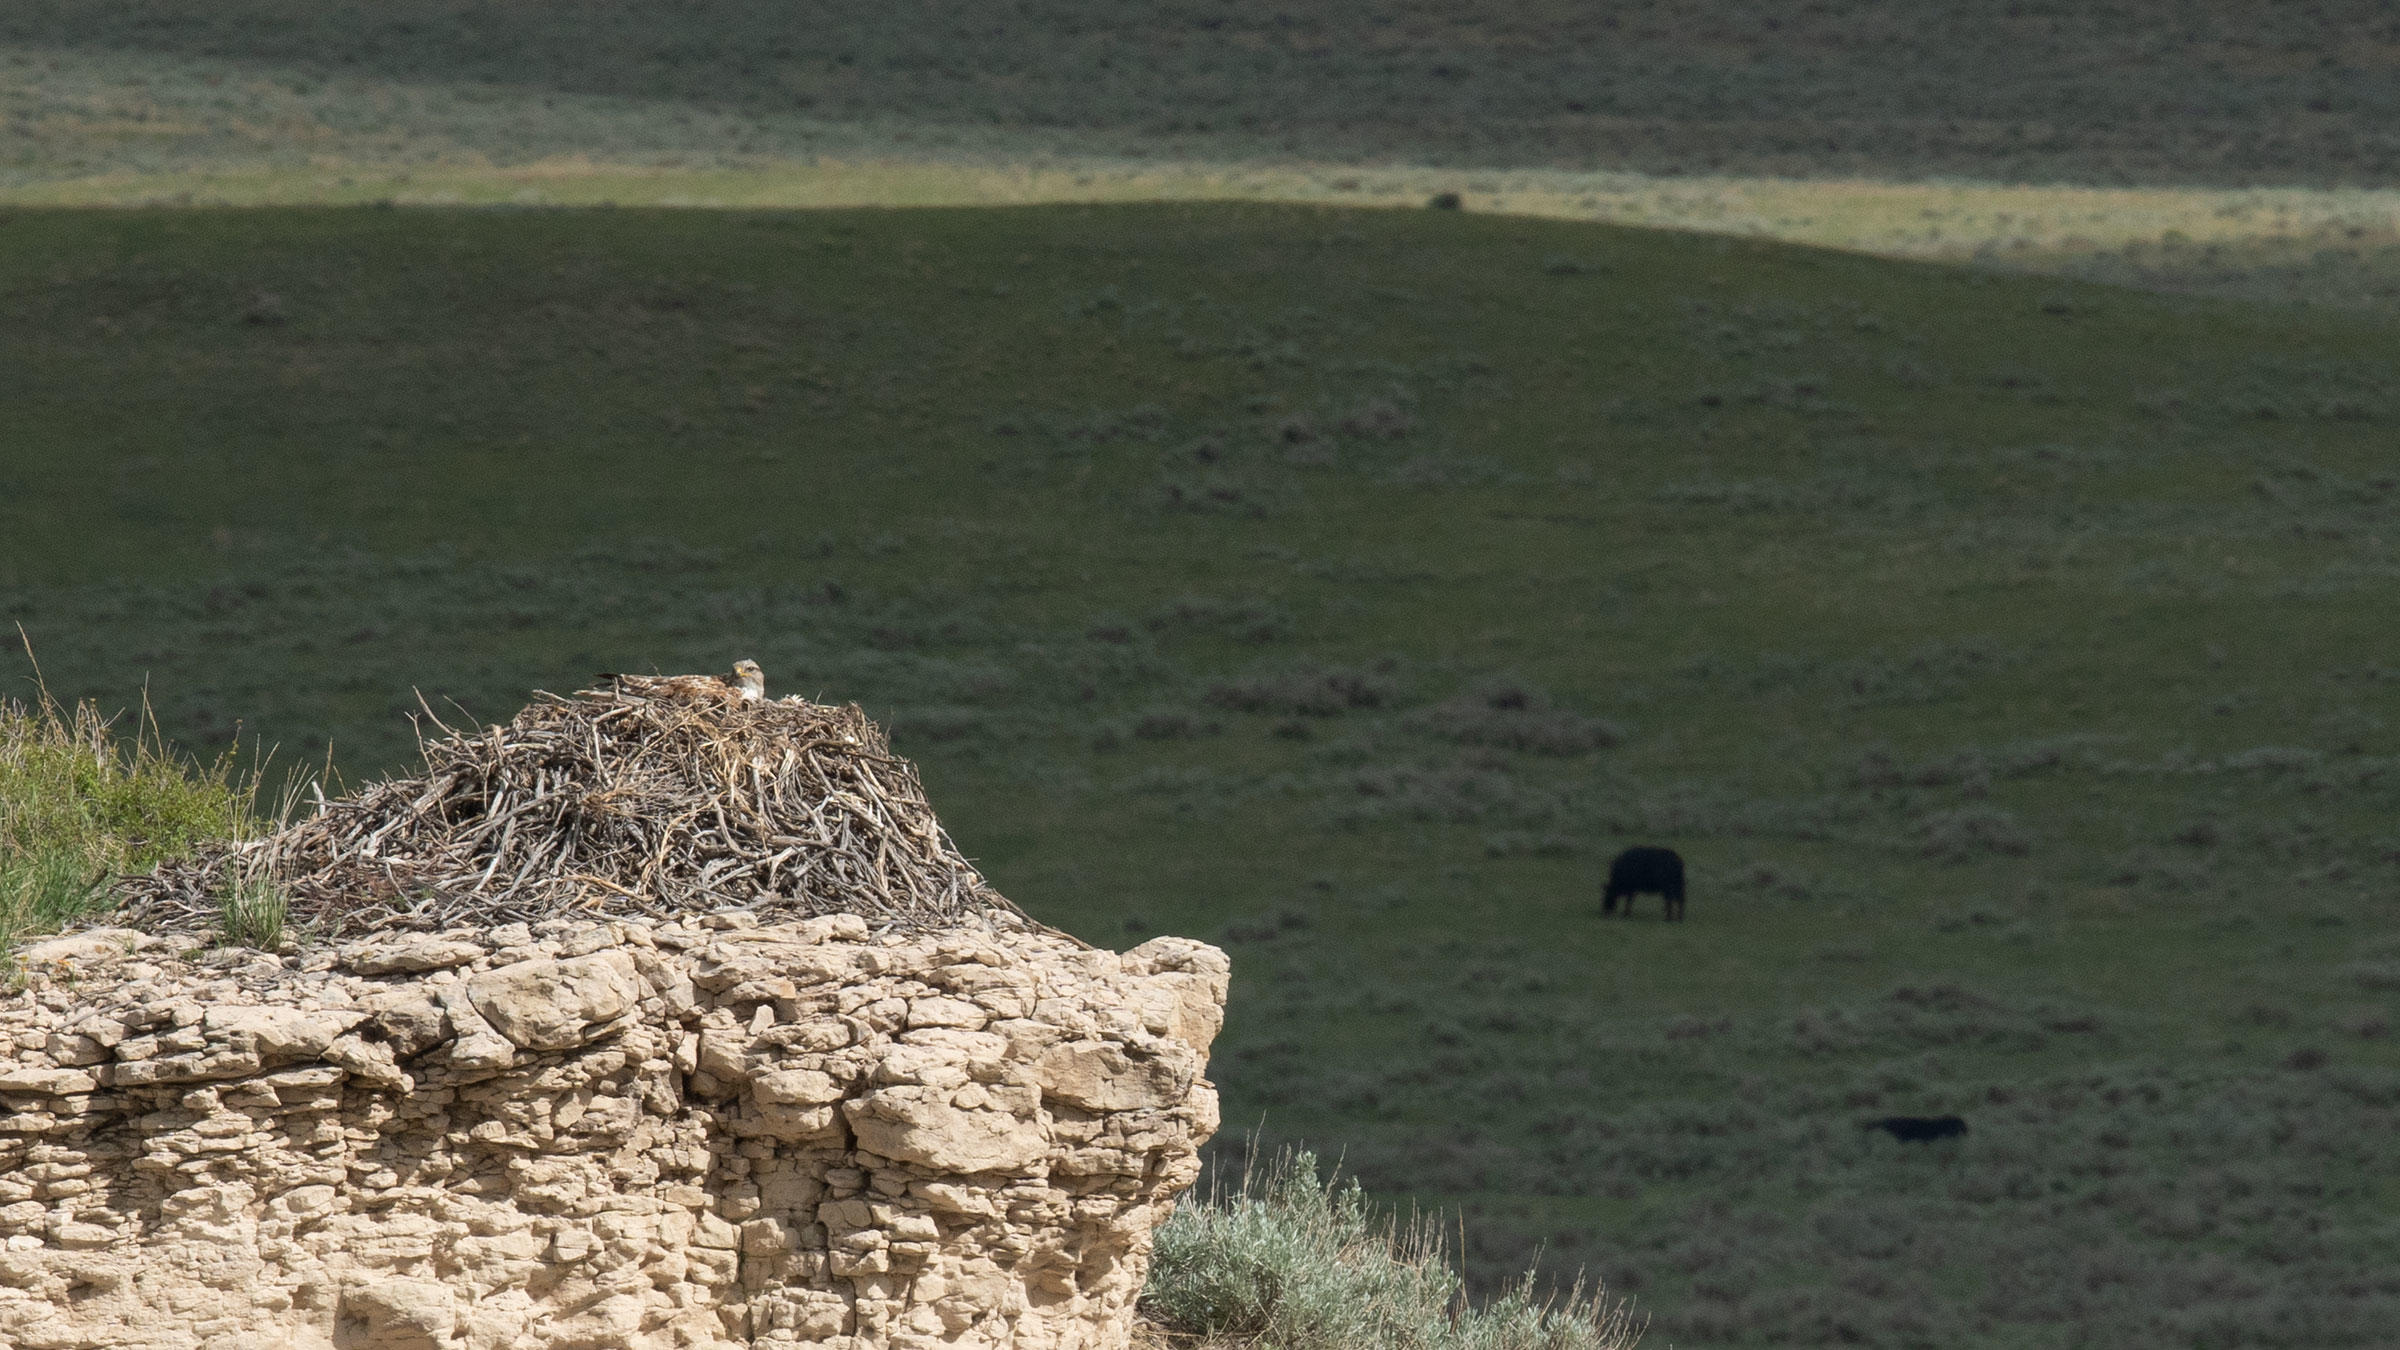 Ferruginous Hawk nesting on Rockin' 7 Ranch, certified by Audubon's Conservation Ranching Initiative.